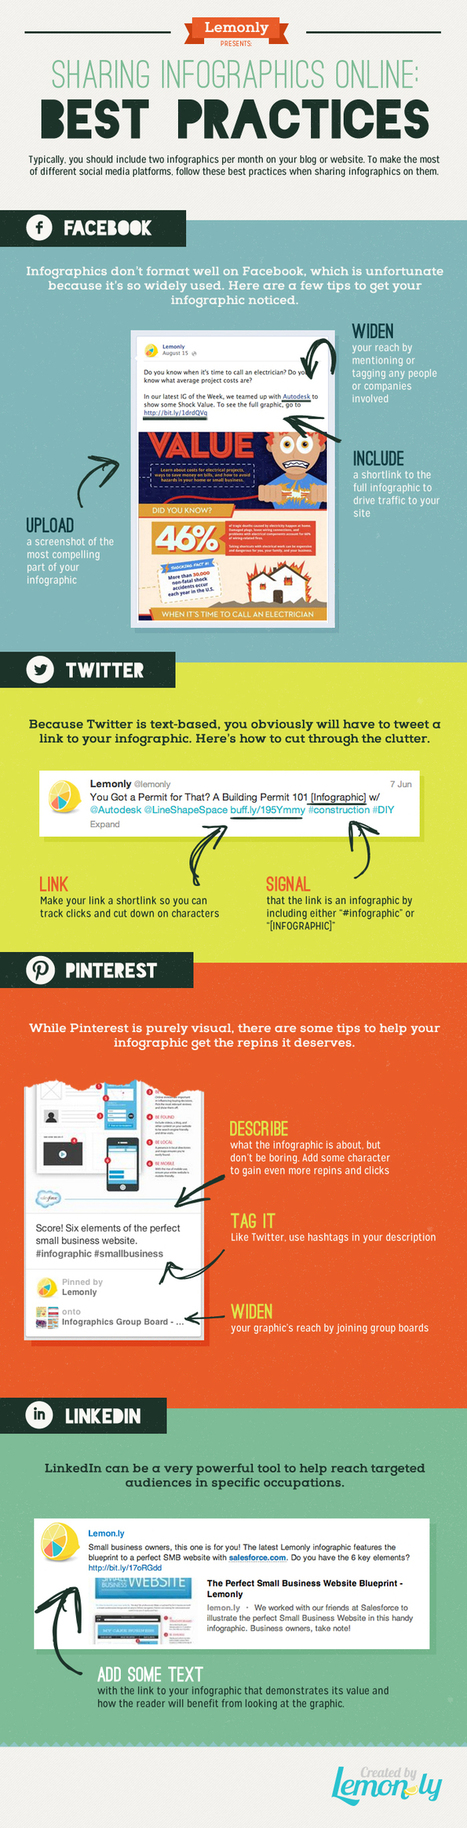 Social Media Best Practices for Infographics | Online World | Scoop.it